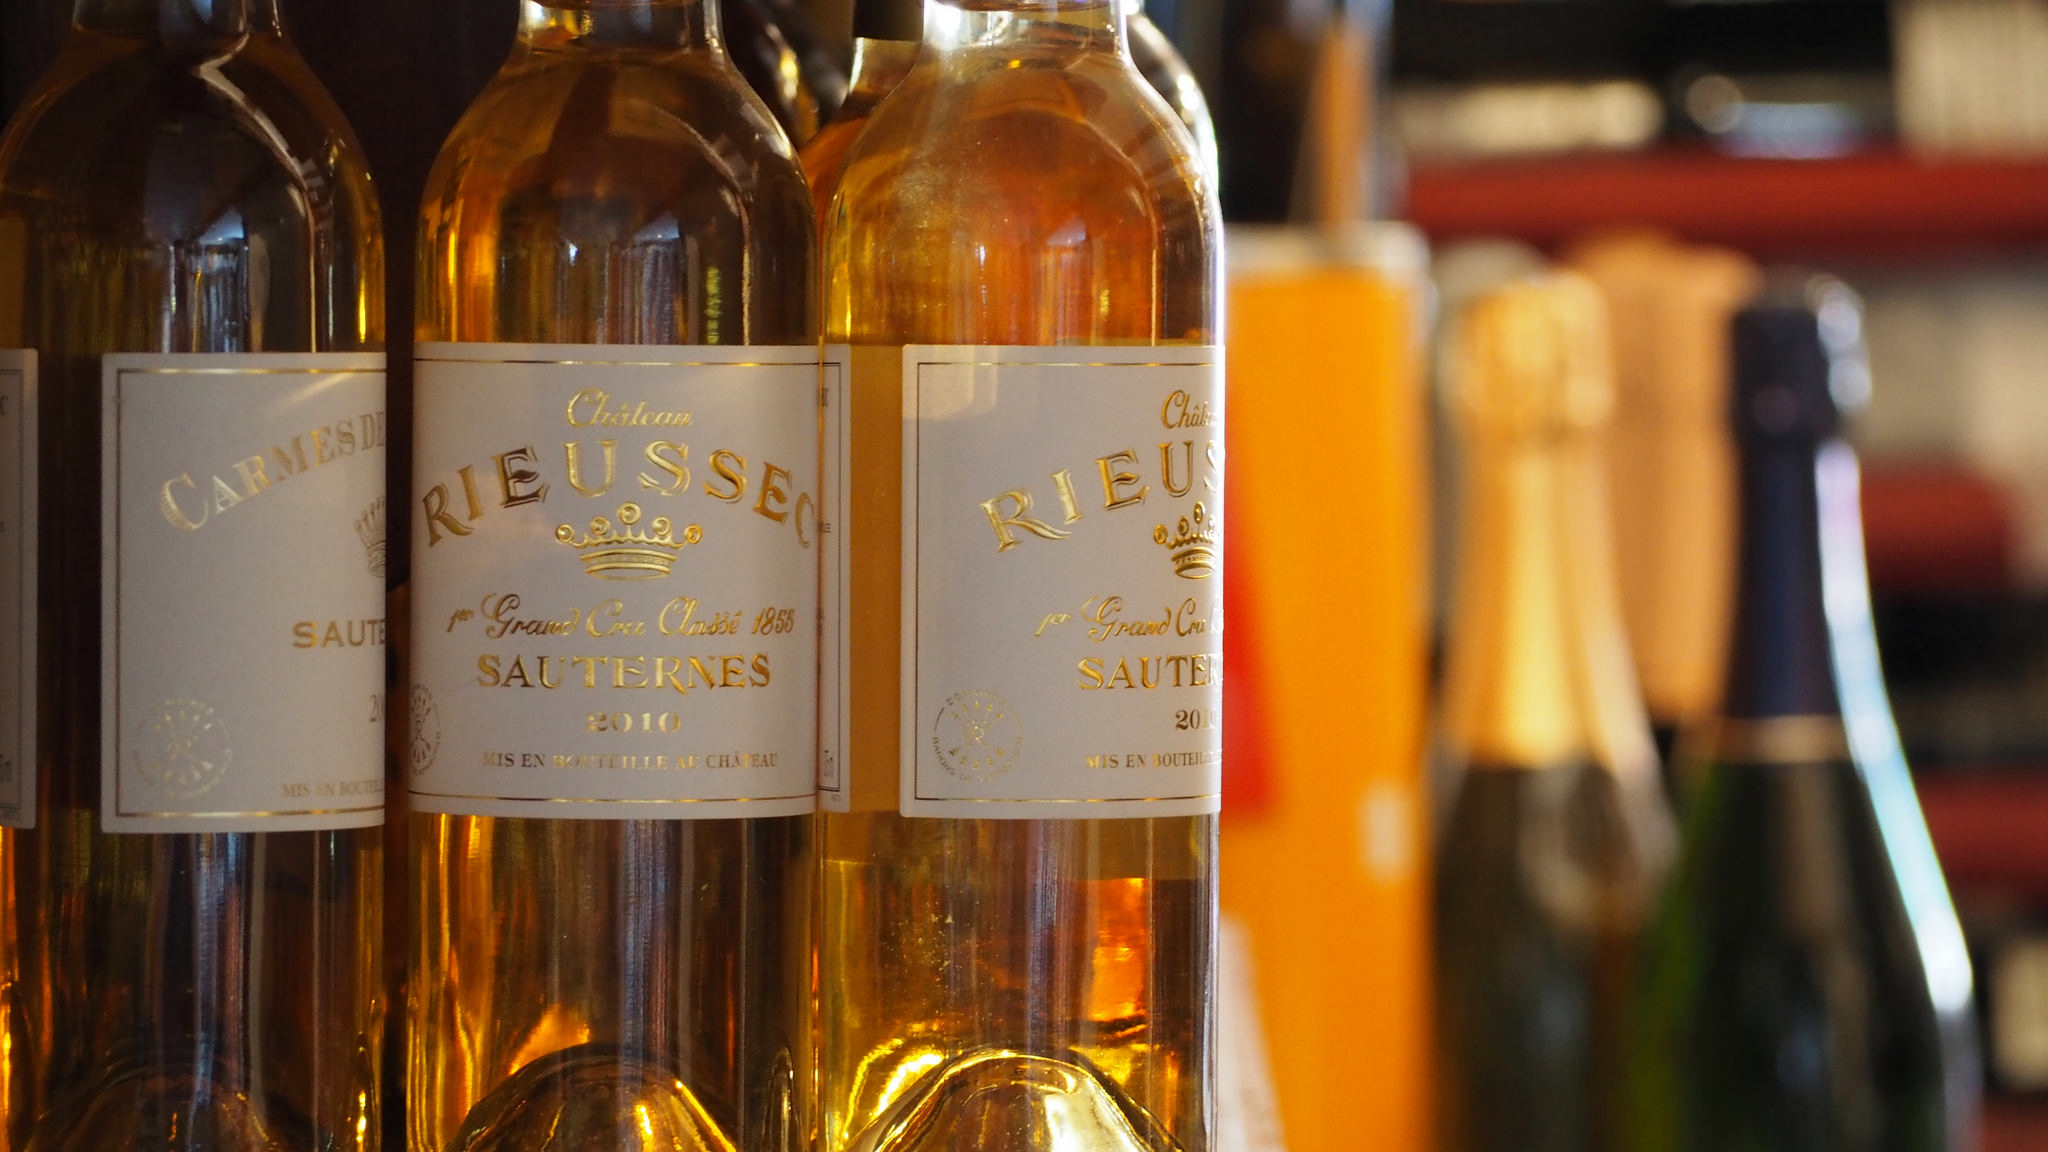 7a9f9902 ... Delicious local Sauternes wine. Photo via Flickr:Dominic Lockyer  Overlooking the ...